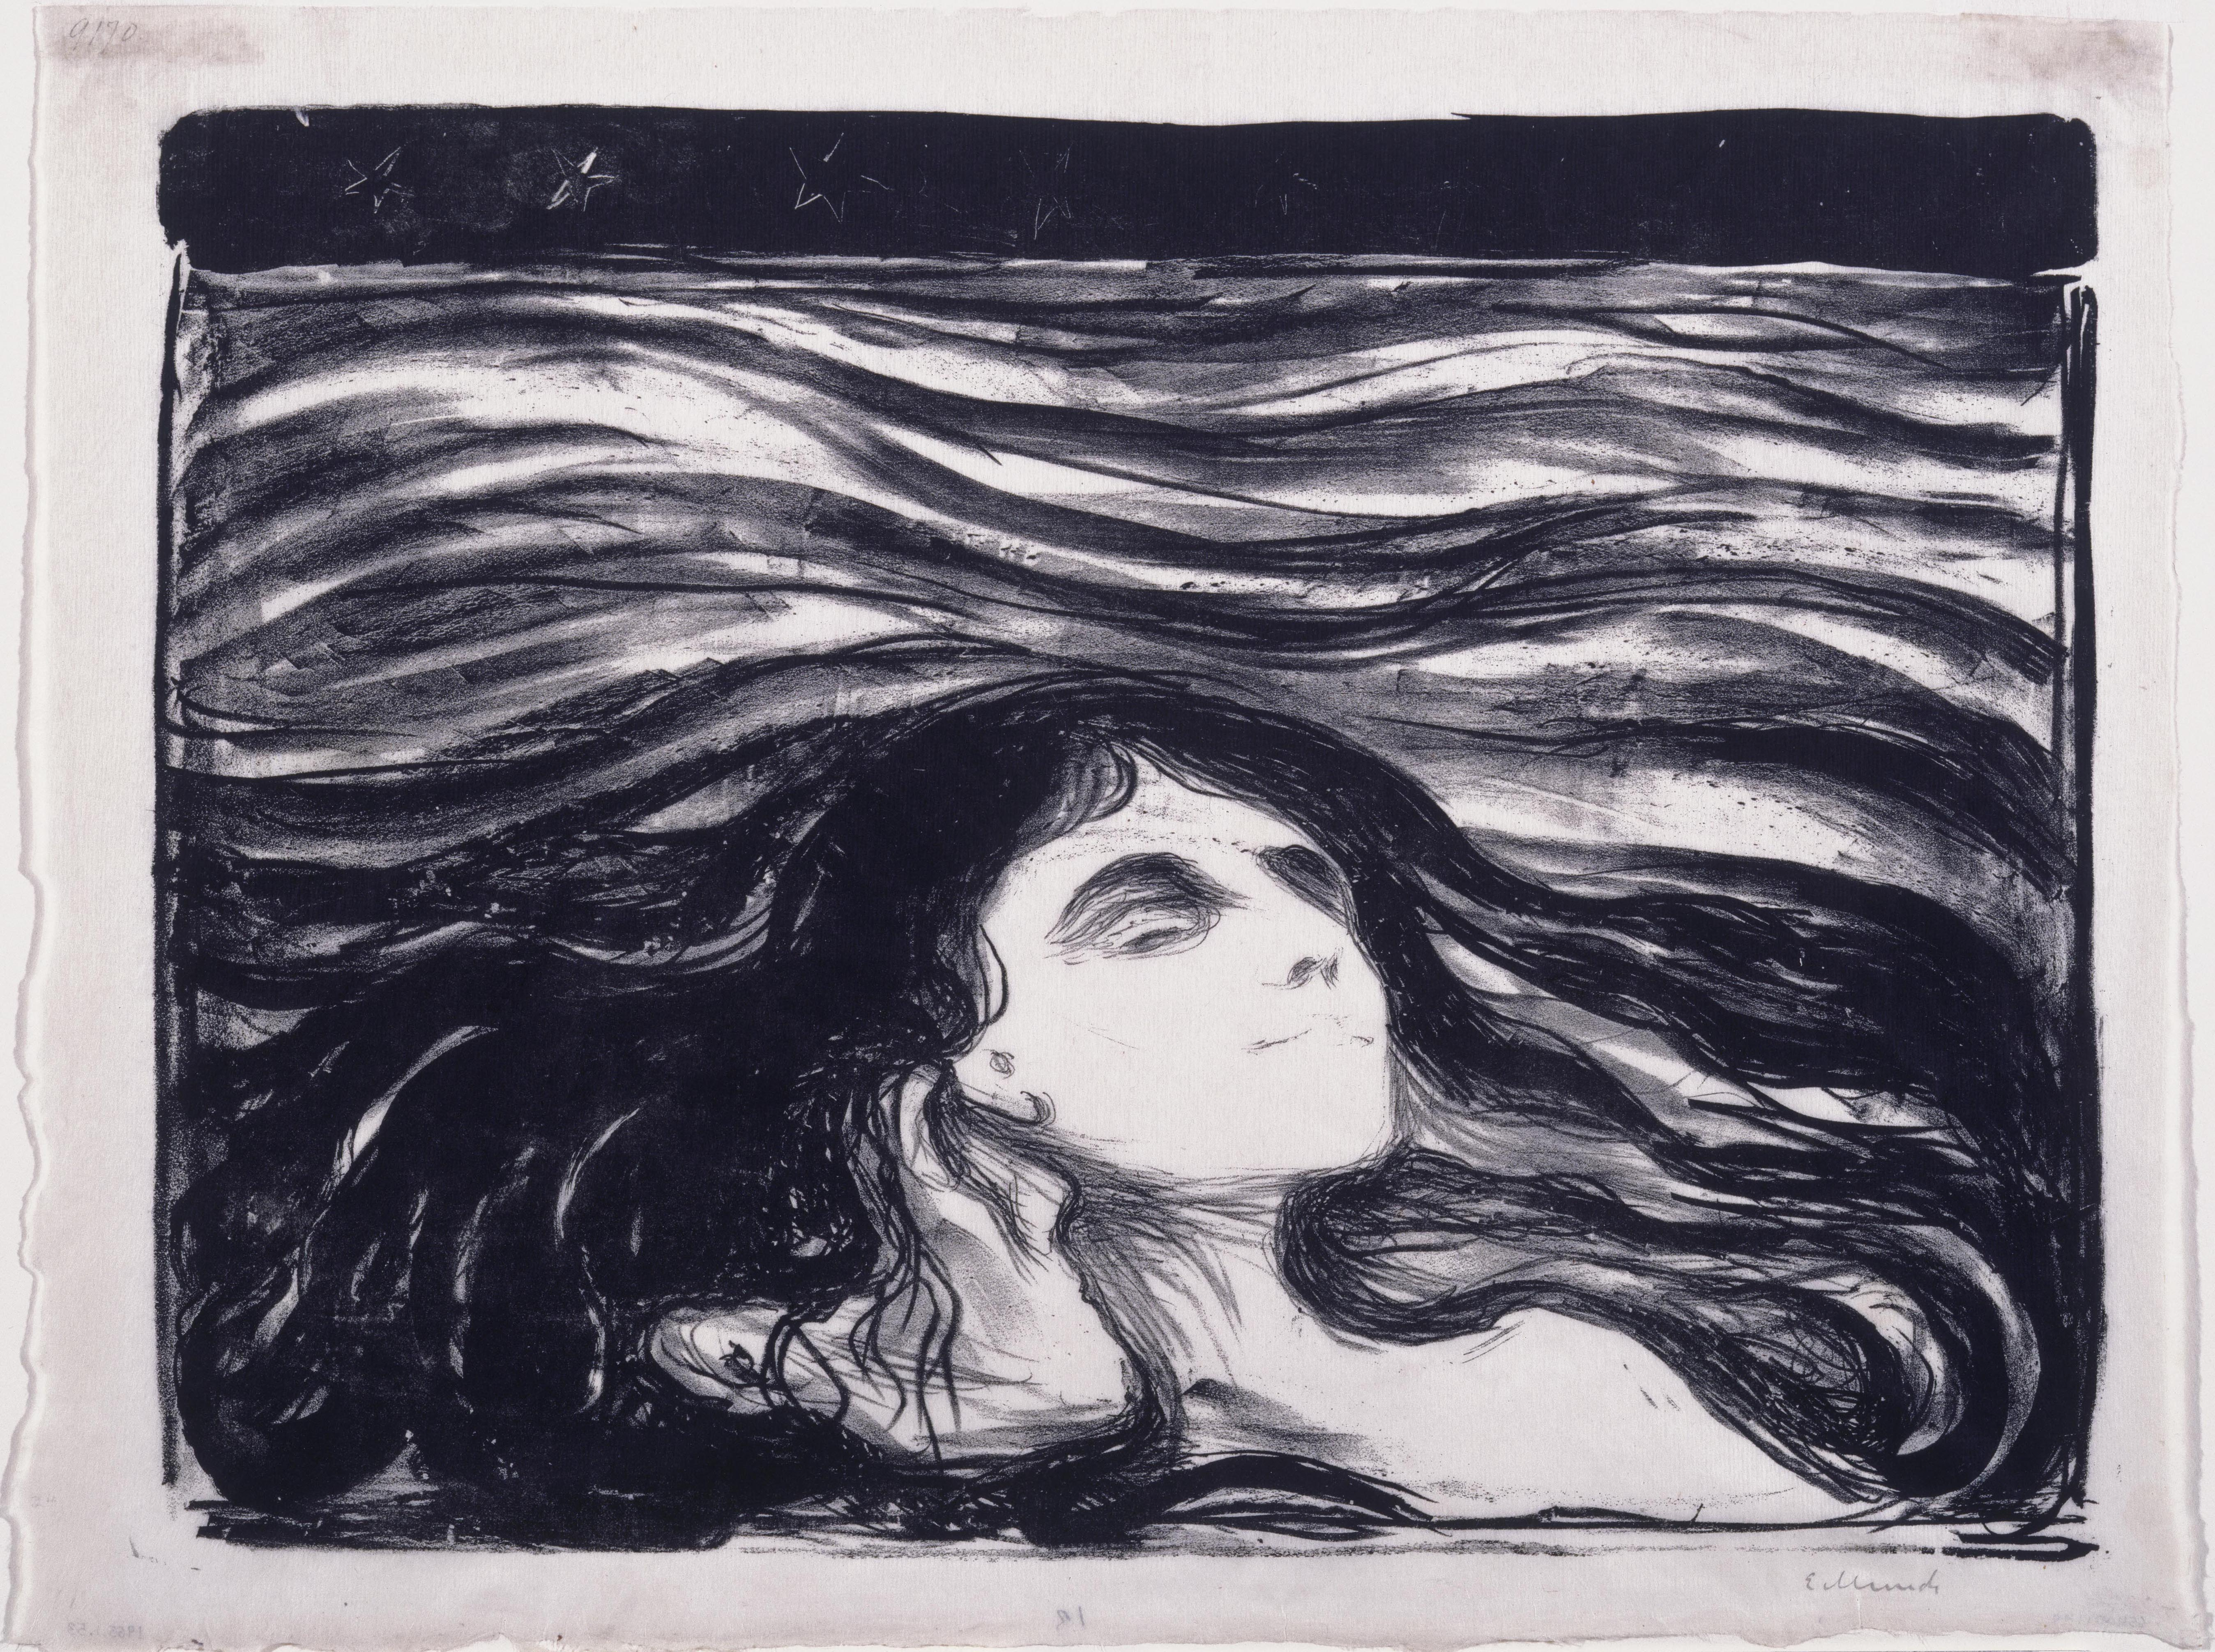 Edvard Munch, On the Waves of Love, 1896